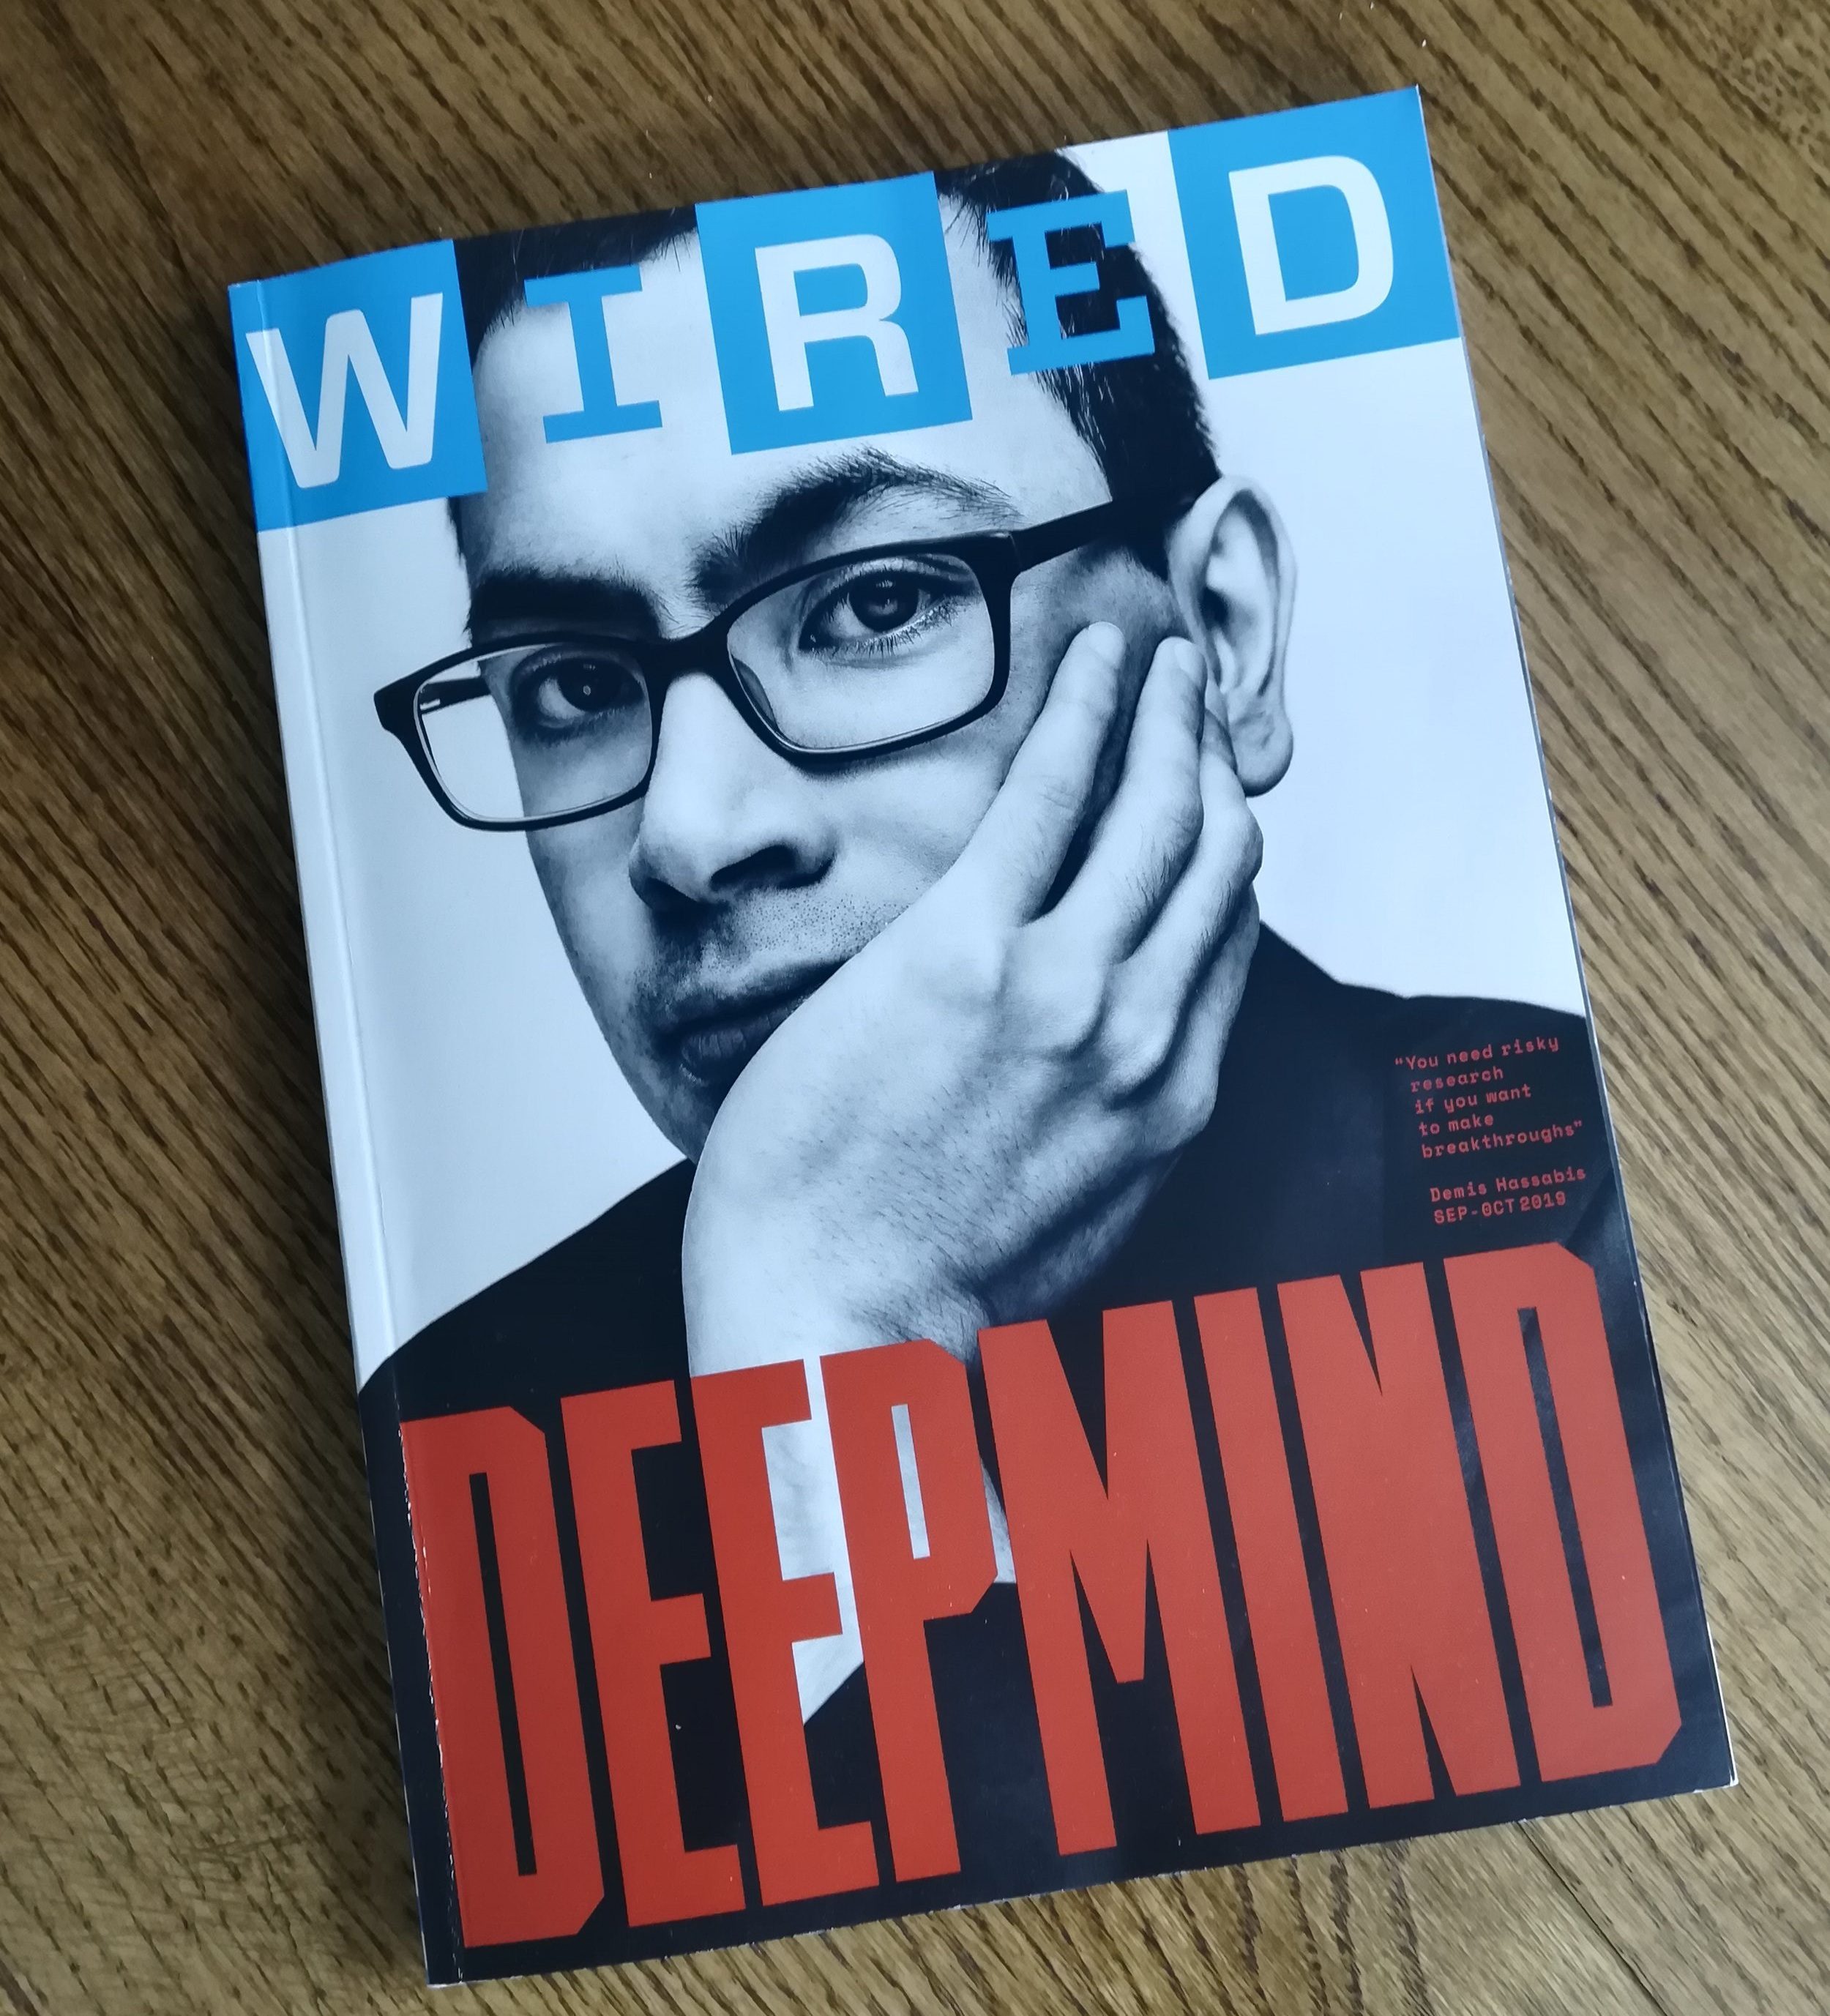 The latest subscriber edition of Wired.